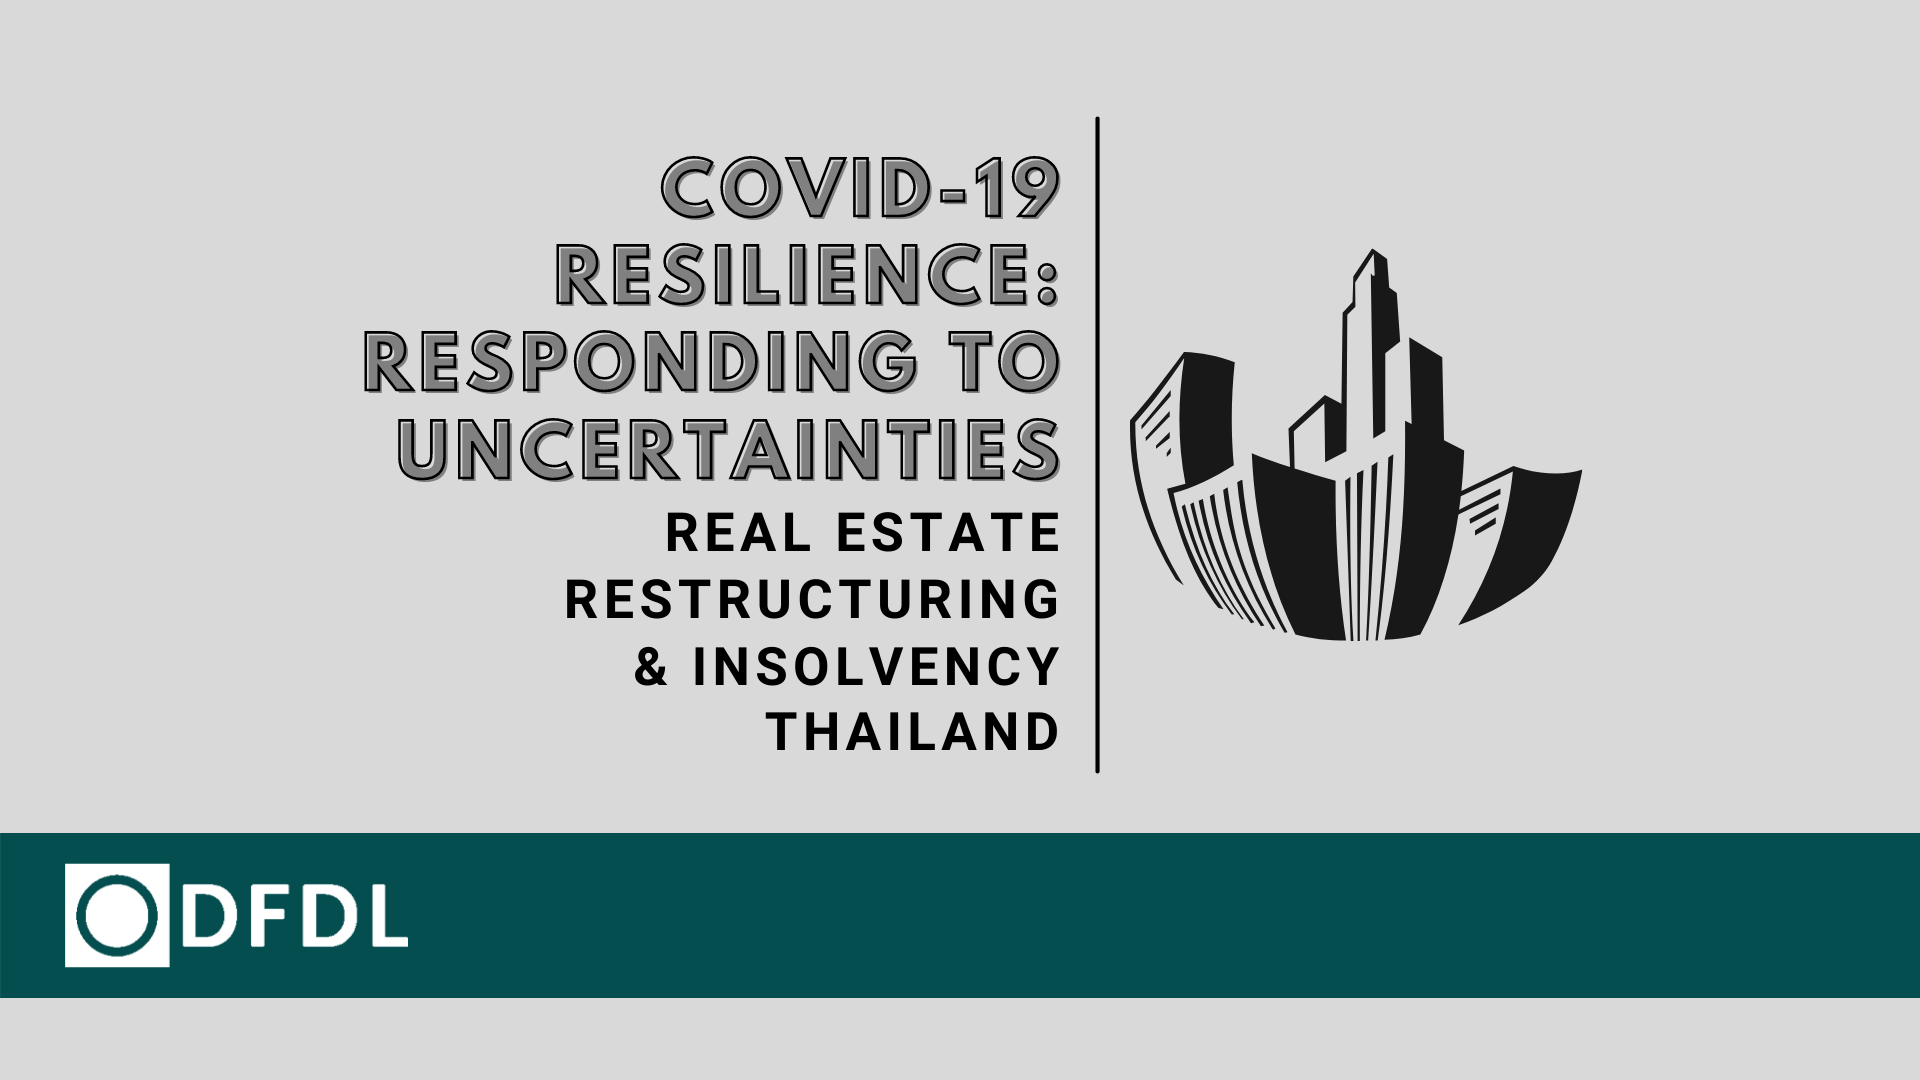 Real Estate Restructuring & Insolvency – COVID19 Resilience: Responding to Uncertainties in Thailand